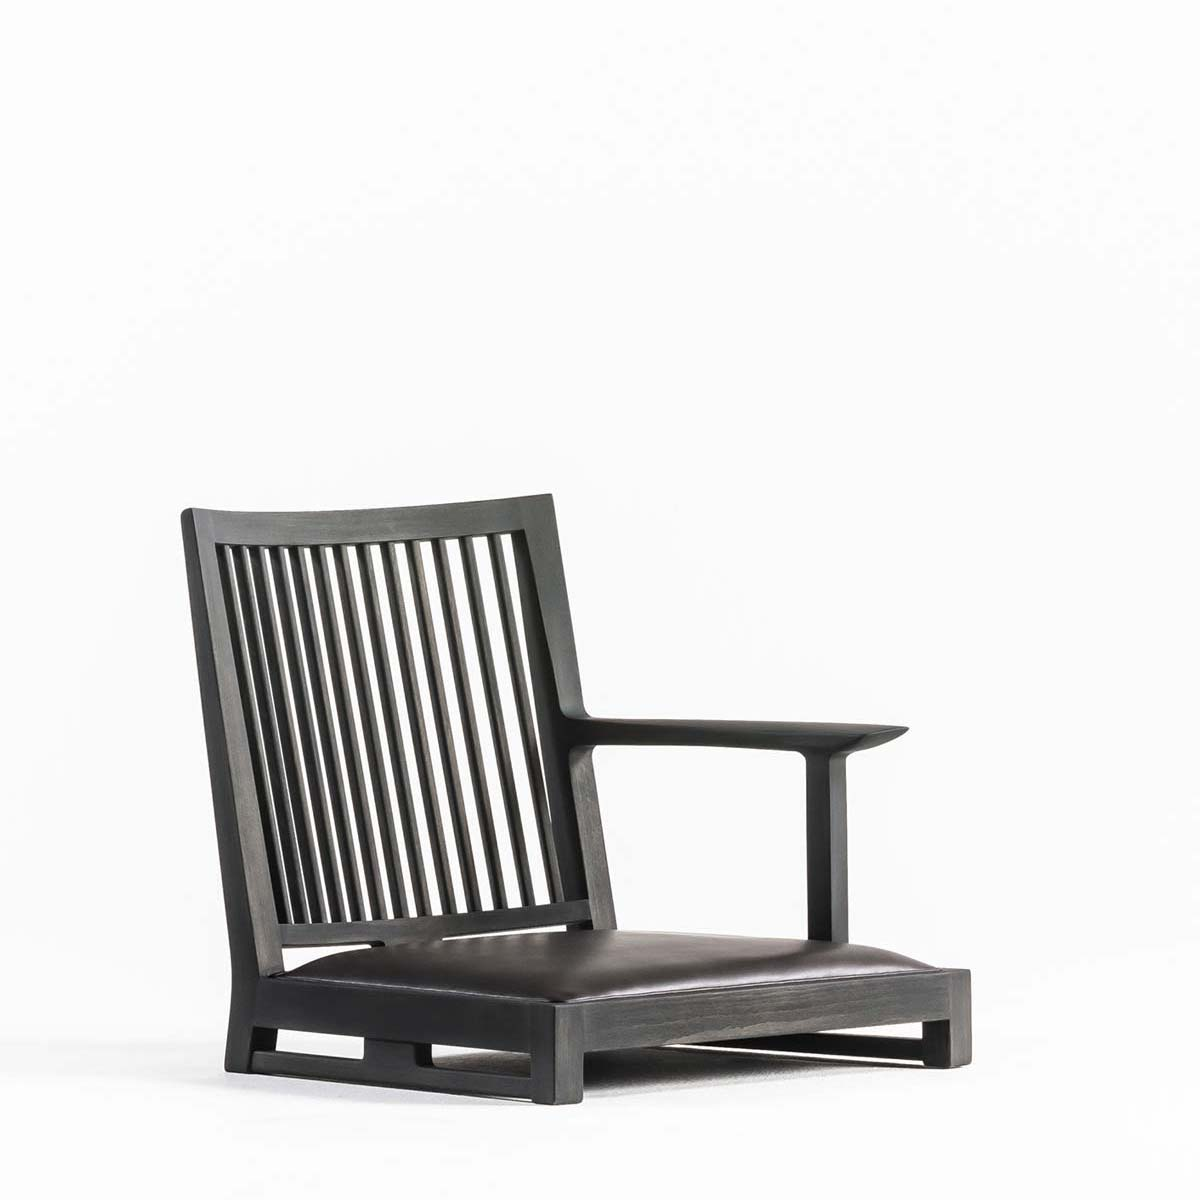 Liku Japanese Chair by Time & Style